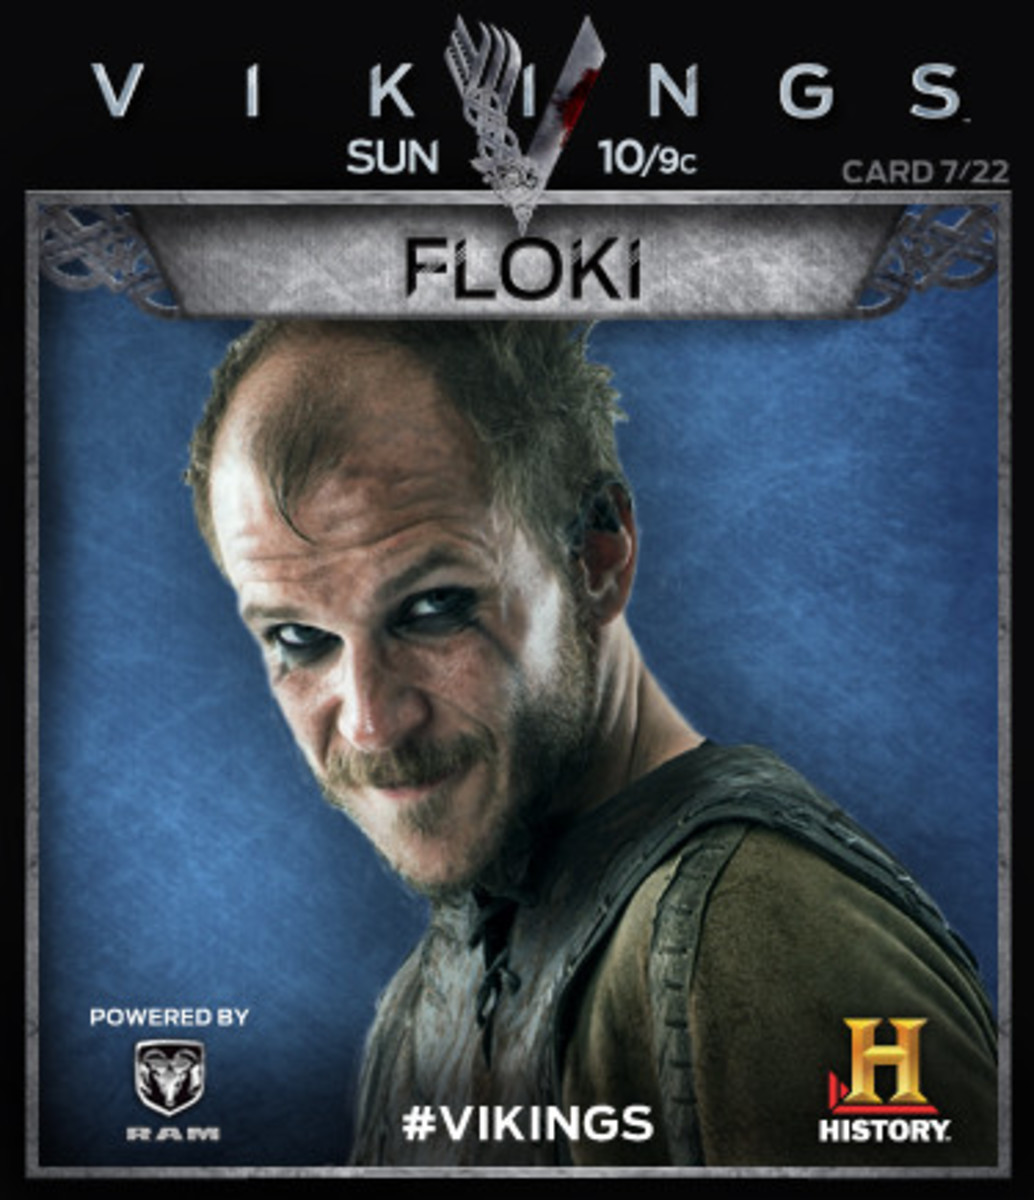 Gustav Skarsgard as Floki and for being the crazy character he makes him to be have to love him